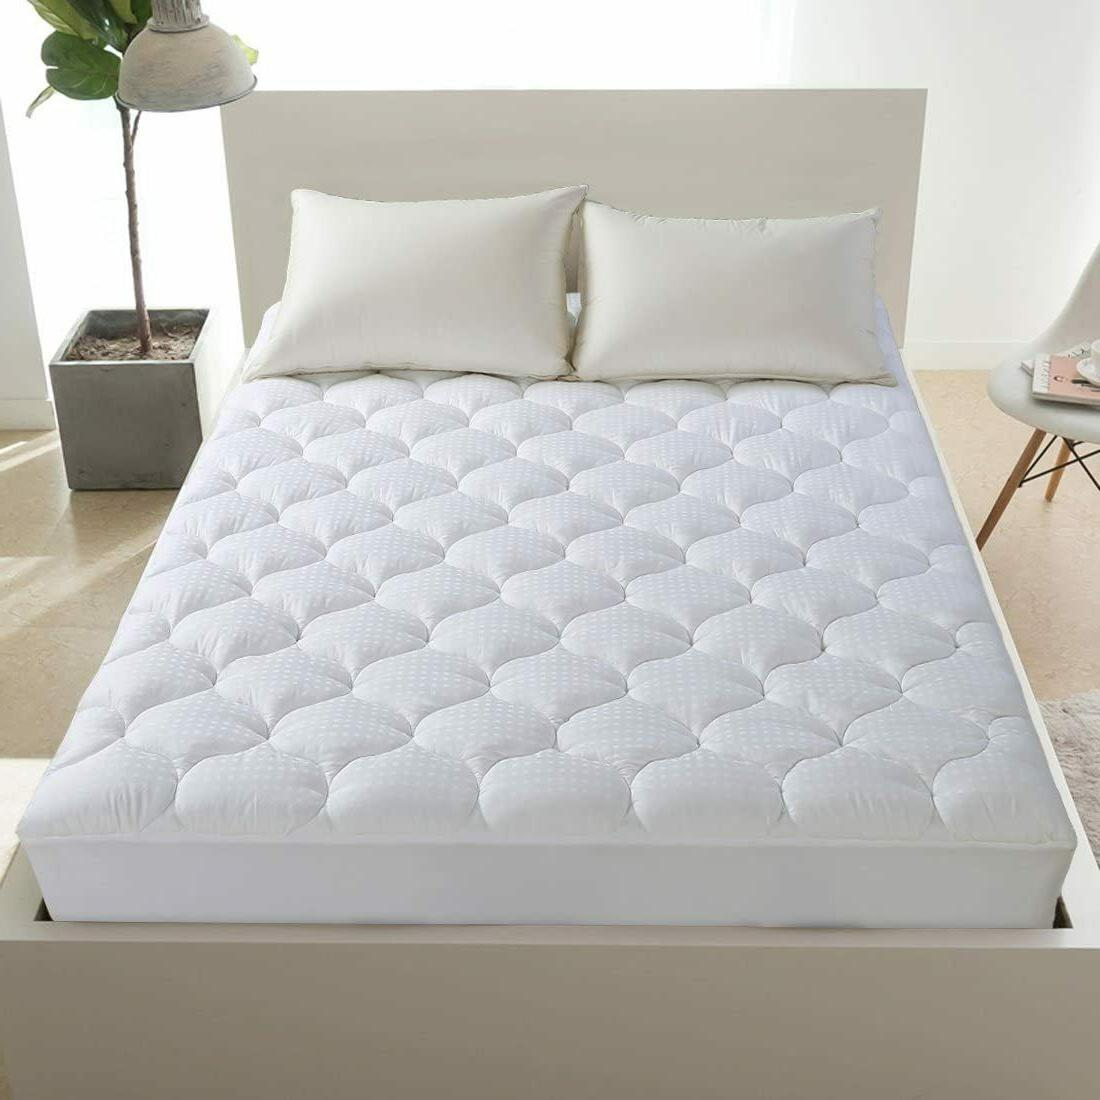 Cooling Snow Down Alternative Pillow Top Luxury Bed